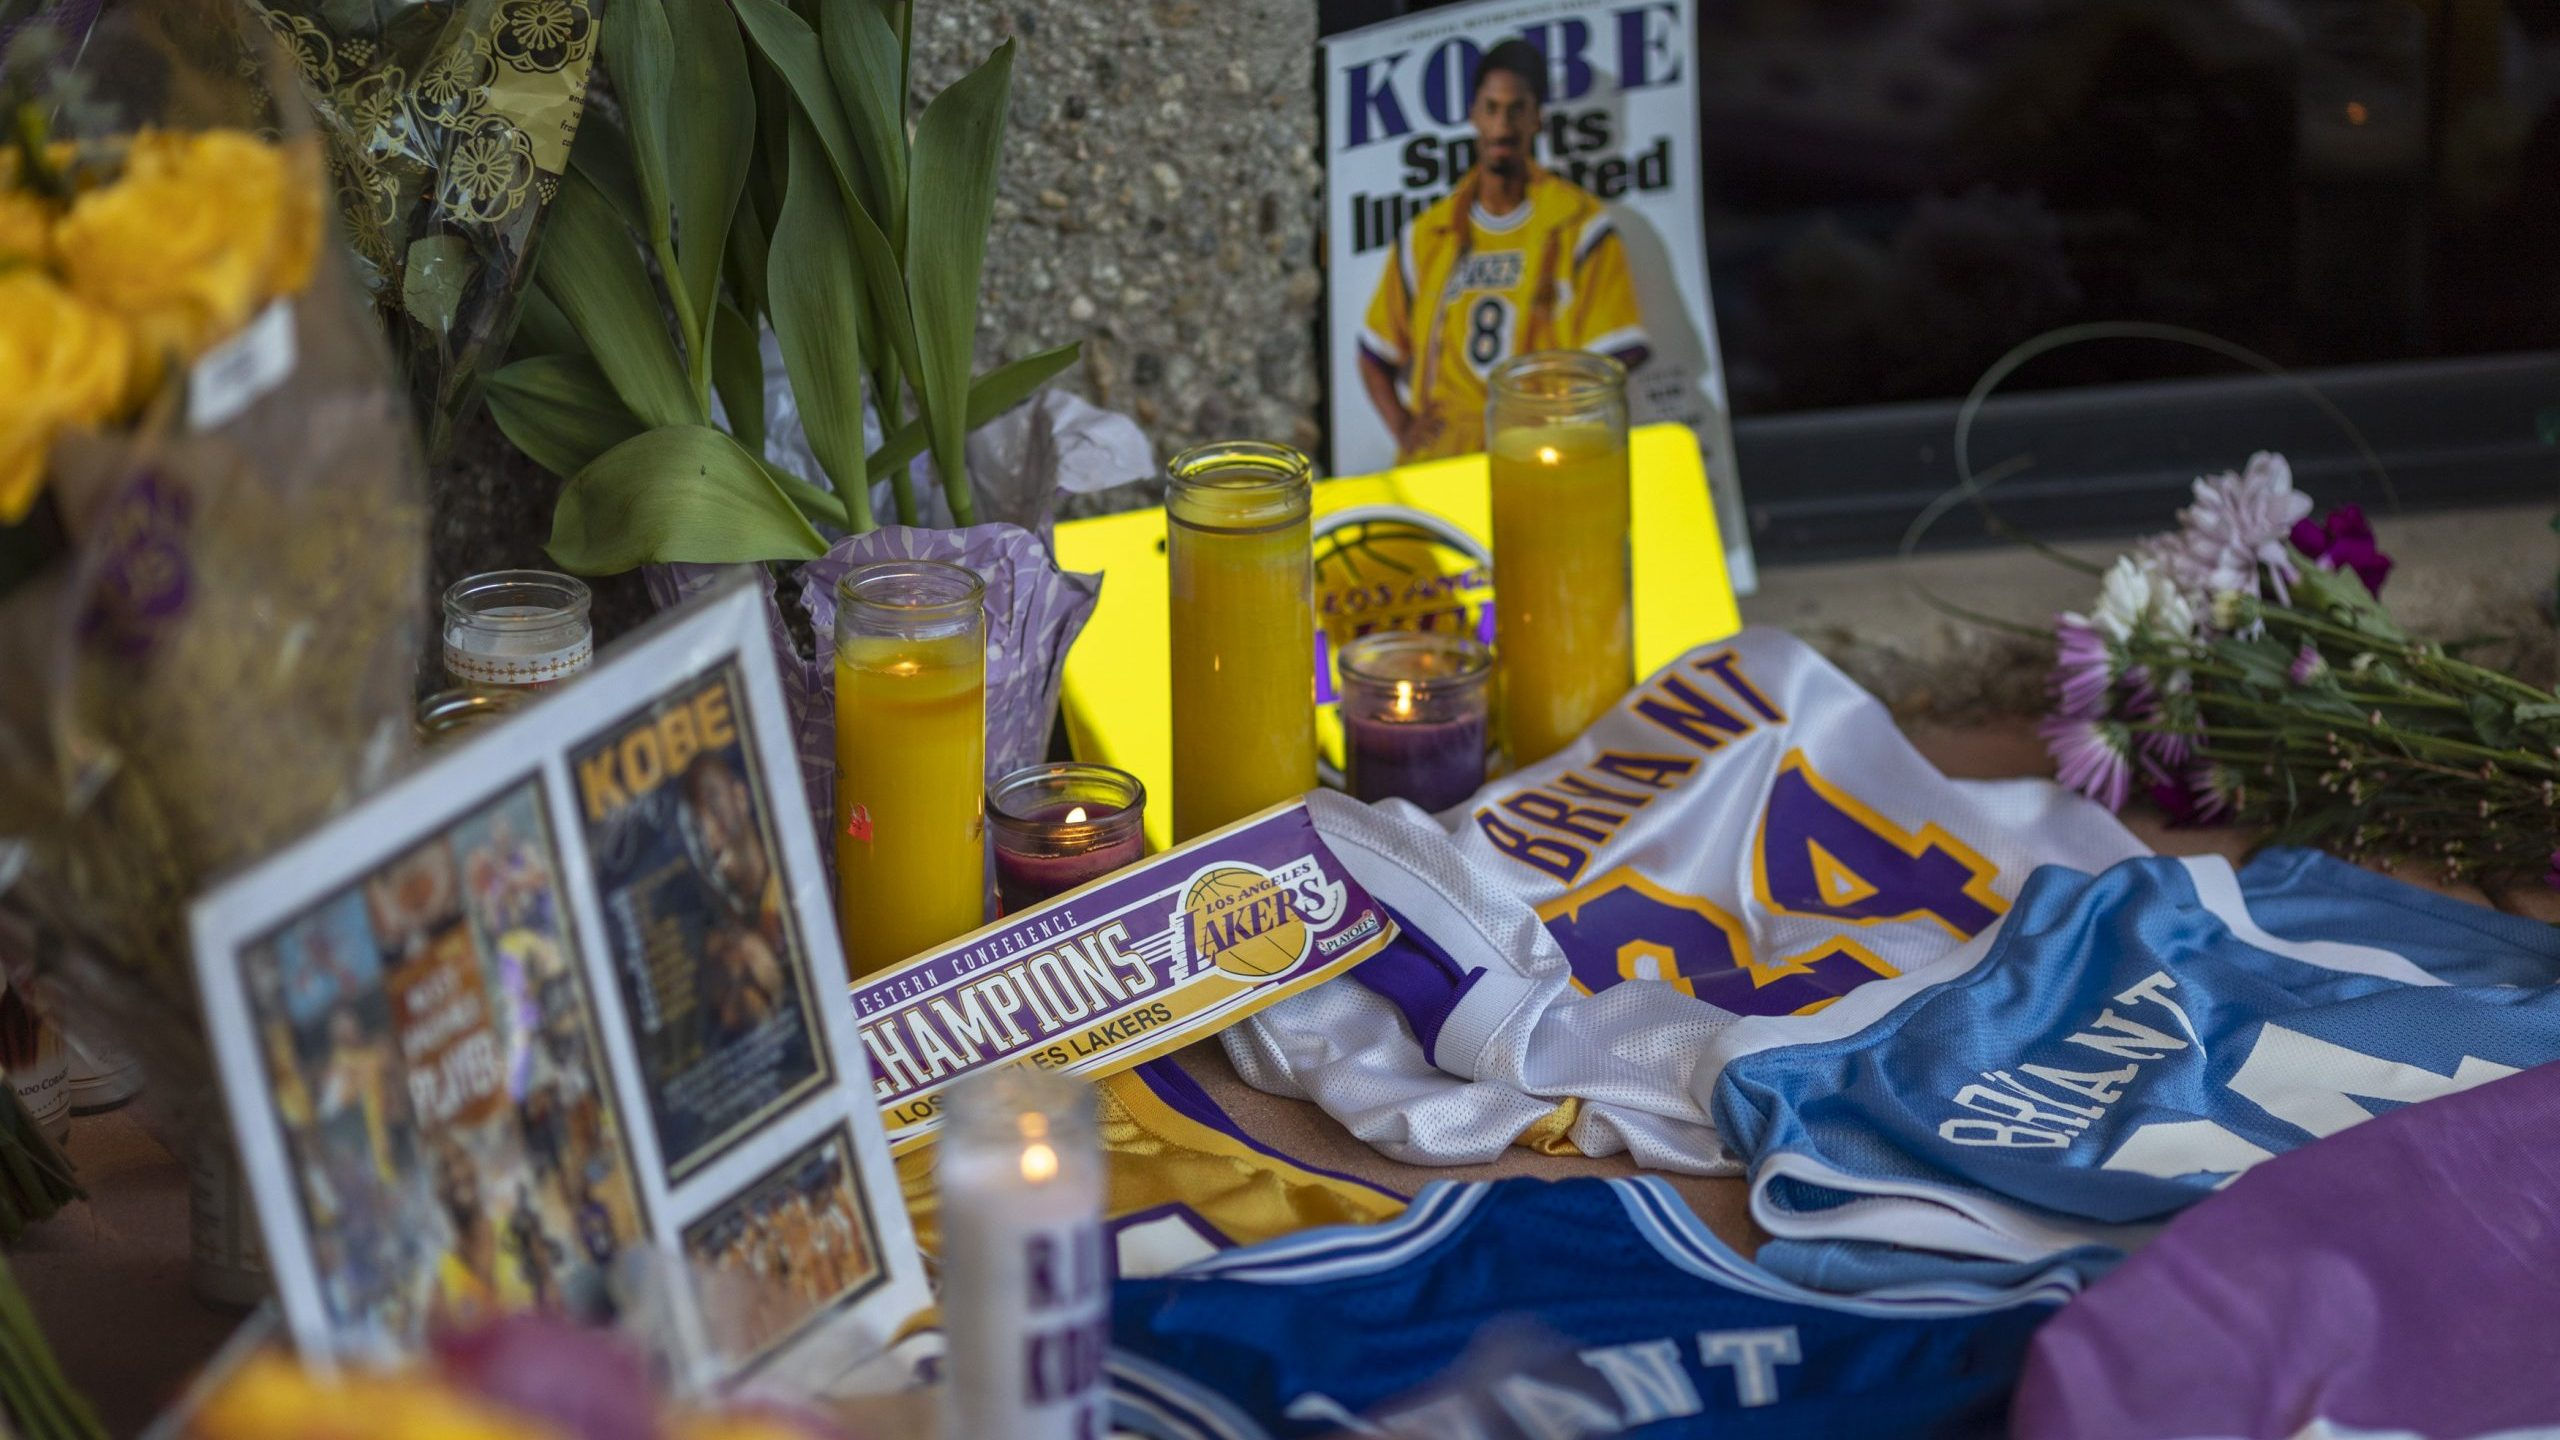 People mourn at a makeshift memorial at Mamba Sports Academy for former NBA great Kobe Bryant, who was killed in a helicopter crash while commuting to the academy on January 26, 2020 in Newbury Park, California. (Credit: David McNew/Getty Images)